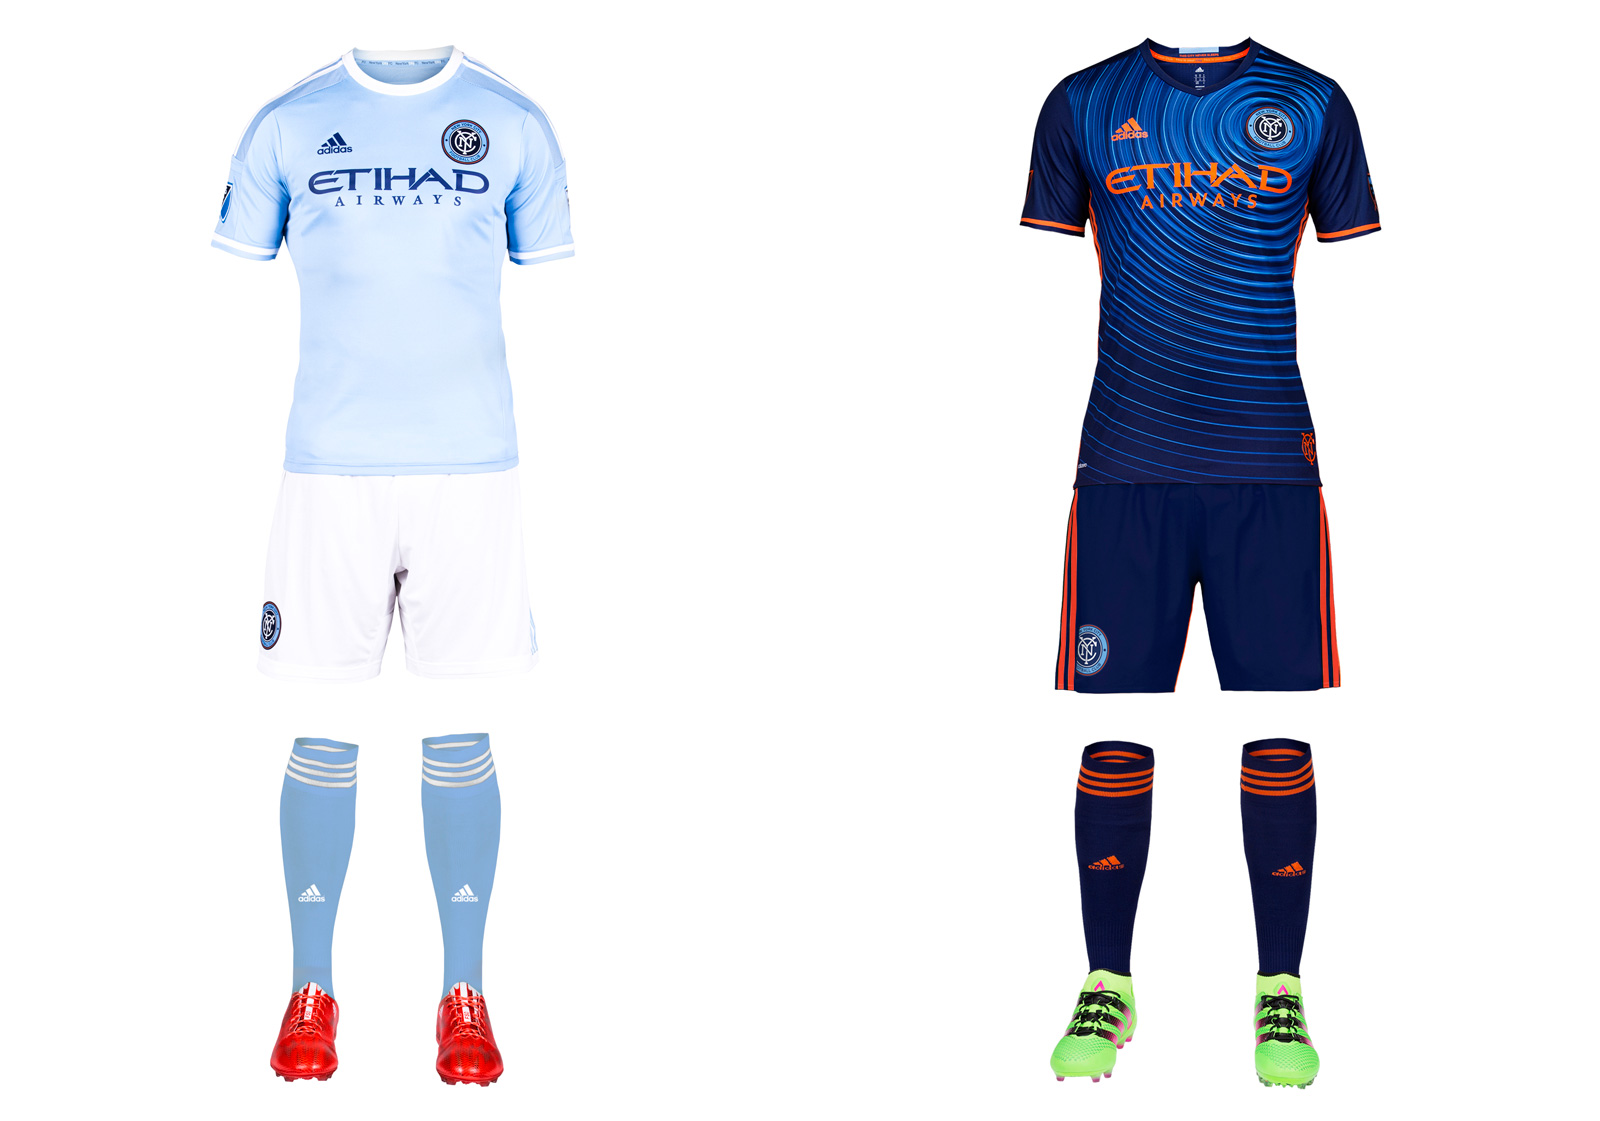 NYCFC's 2016 MLS uniforms